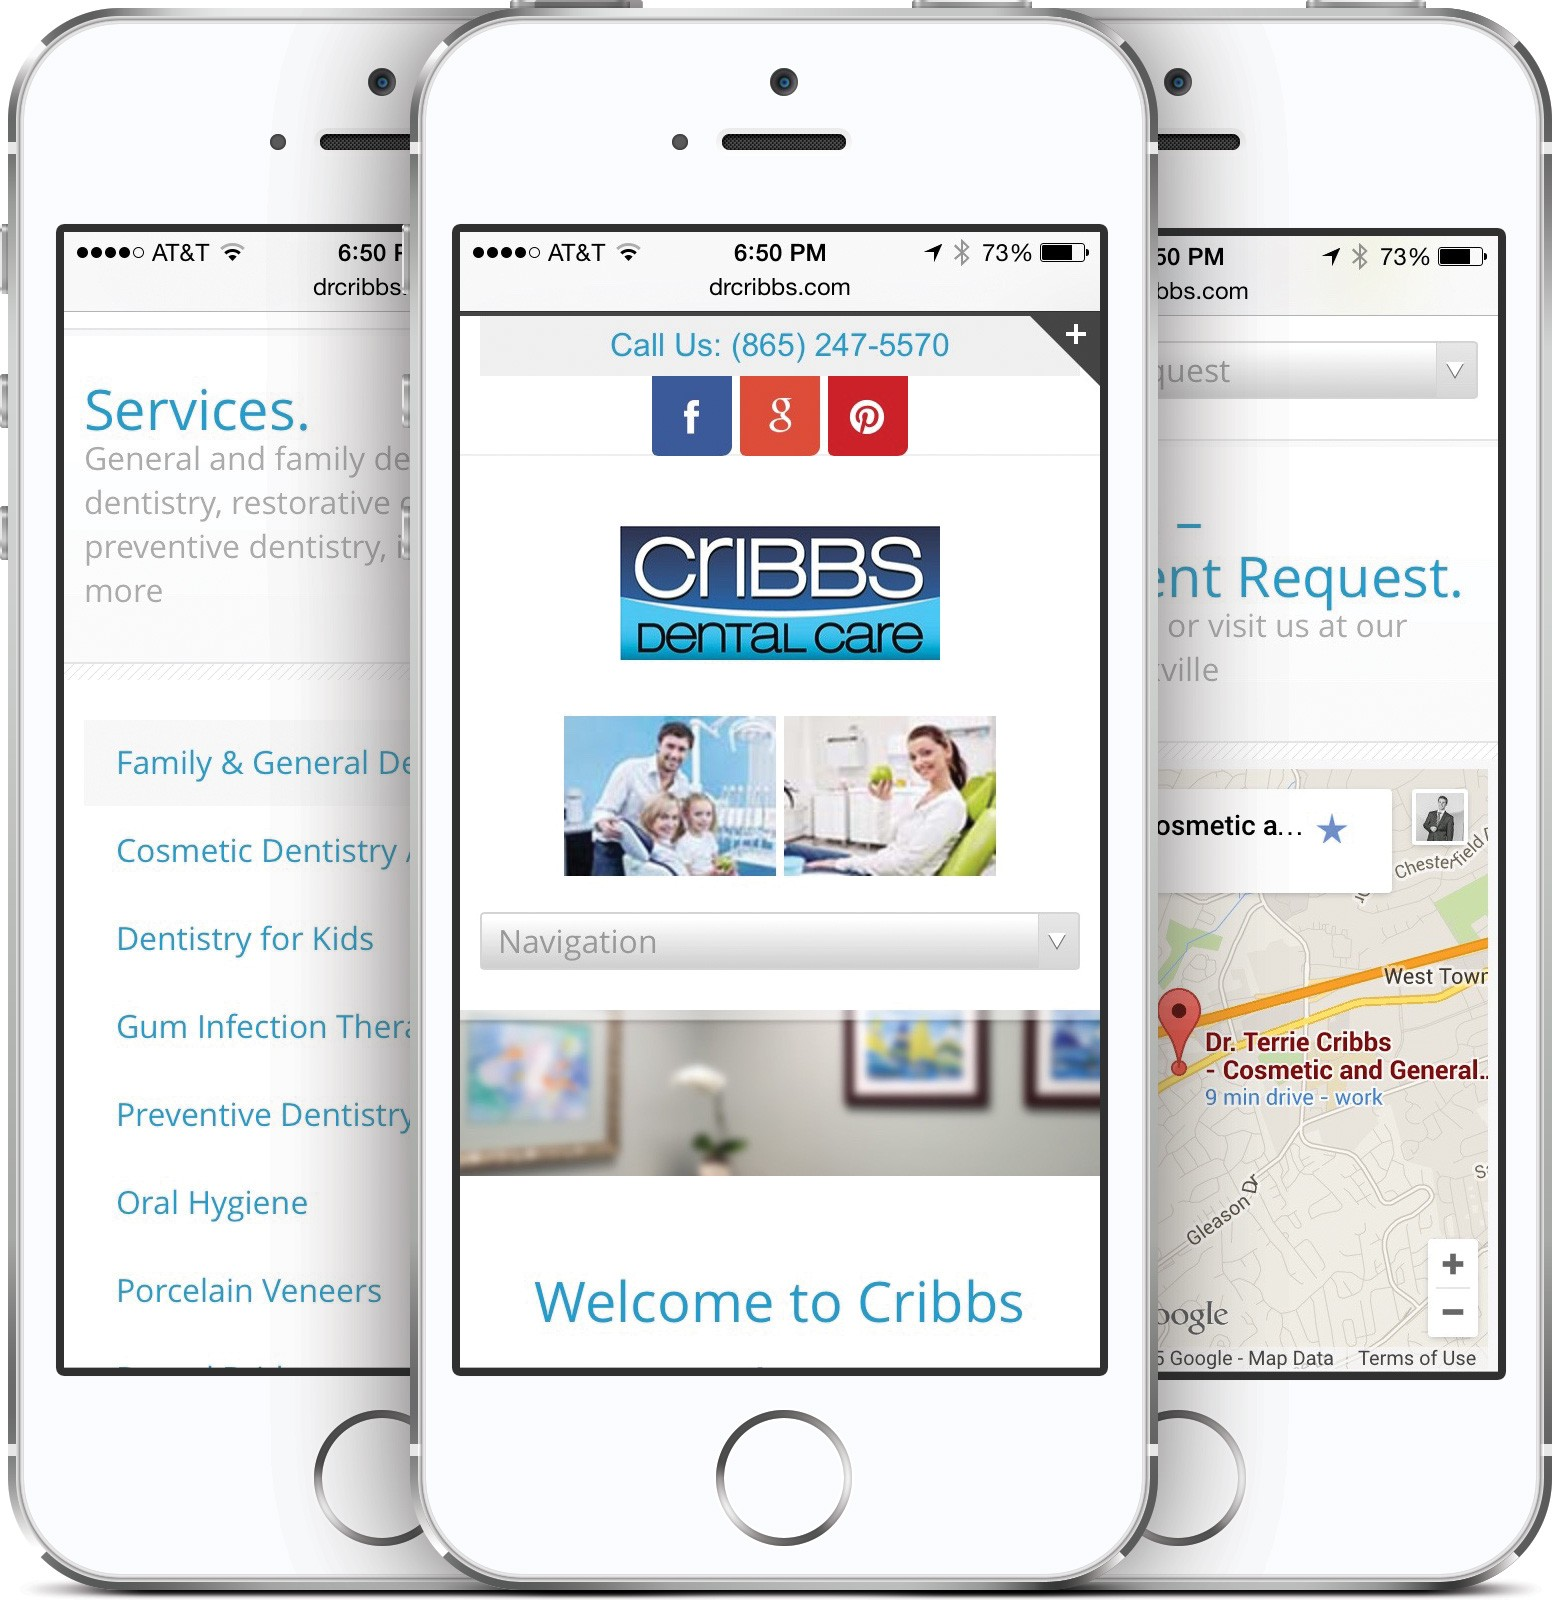 Cribbs Dental Care on an iPhone